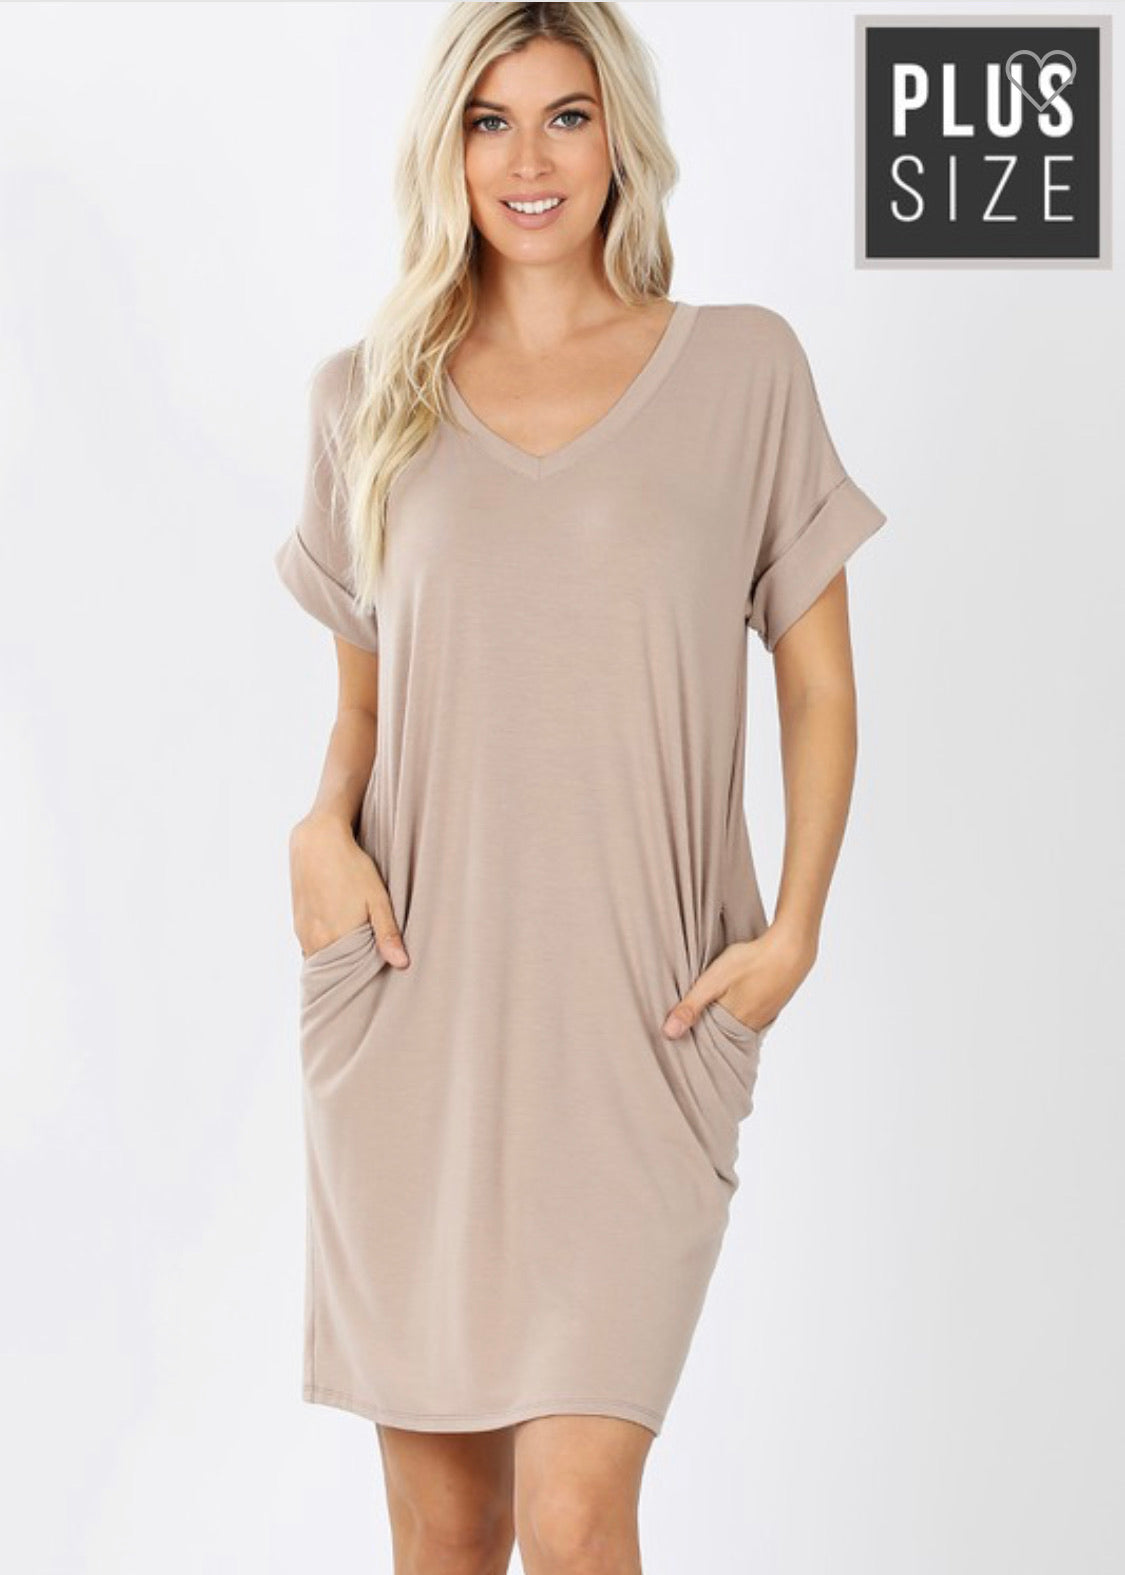 Vneck T-Shirt Dress Plus Sizes